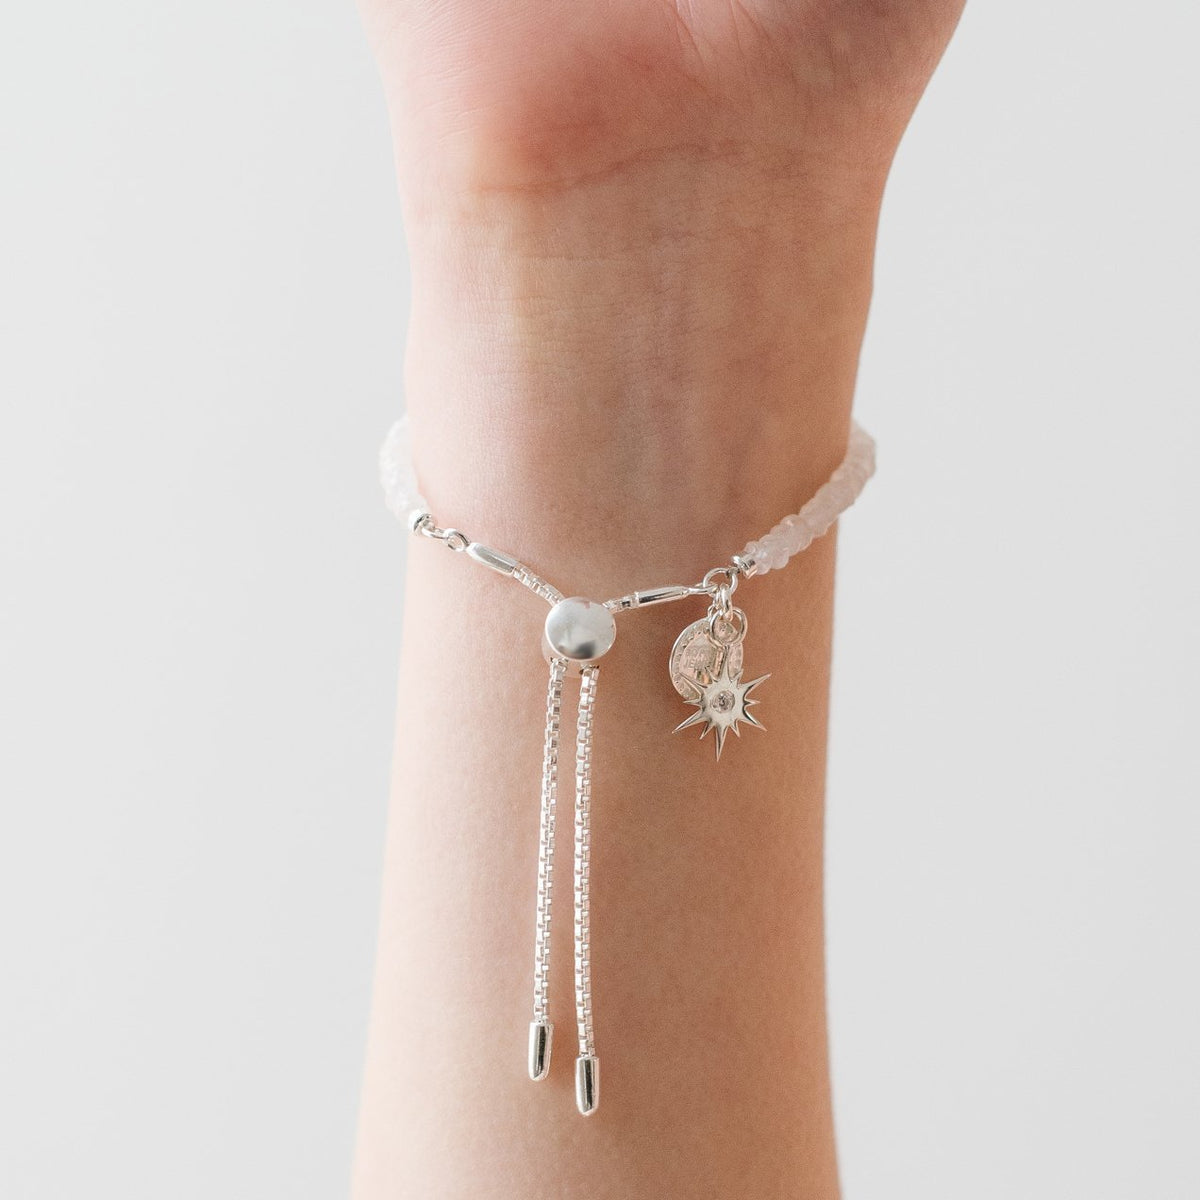 ICONIC ADJUSTABLE BRACELET - RAINBOW MOONSTONE & SILVER - SO PRETTY CARA COTTER